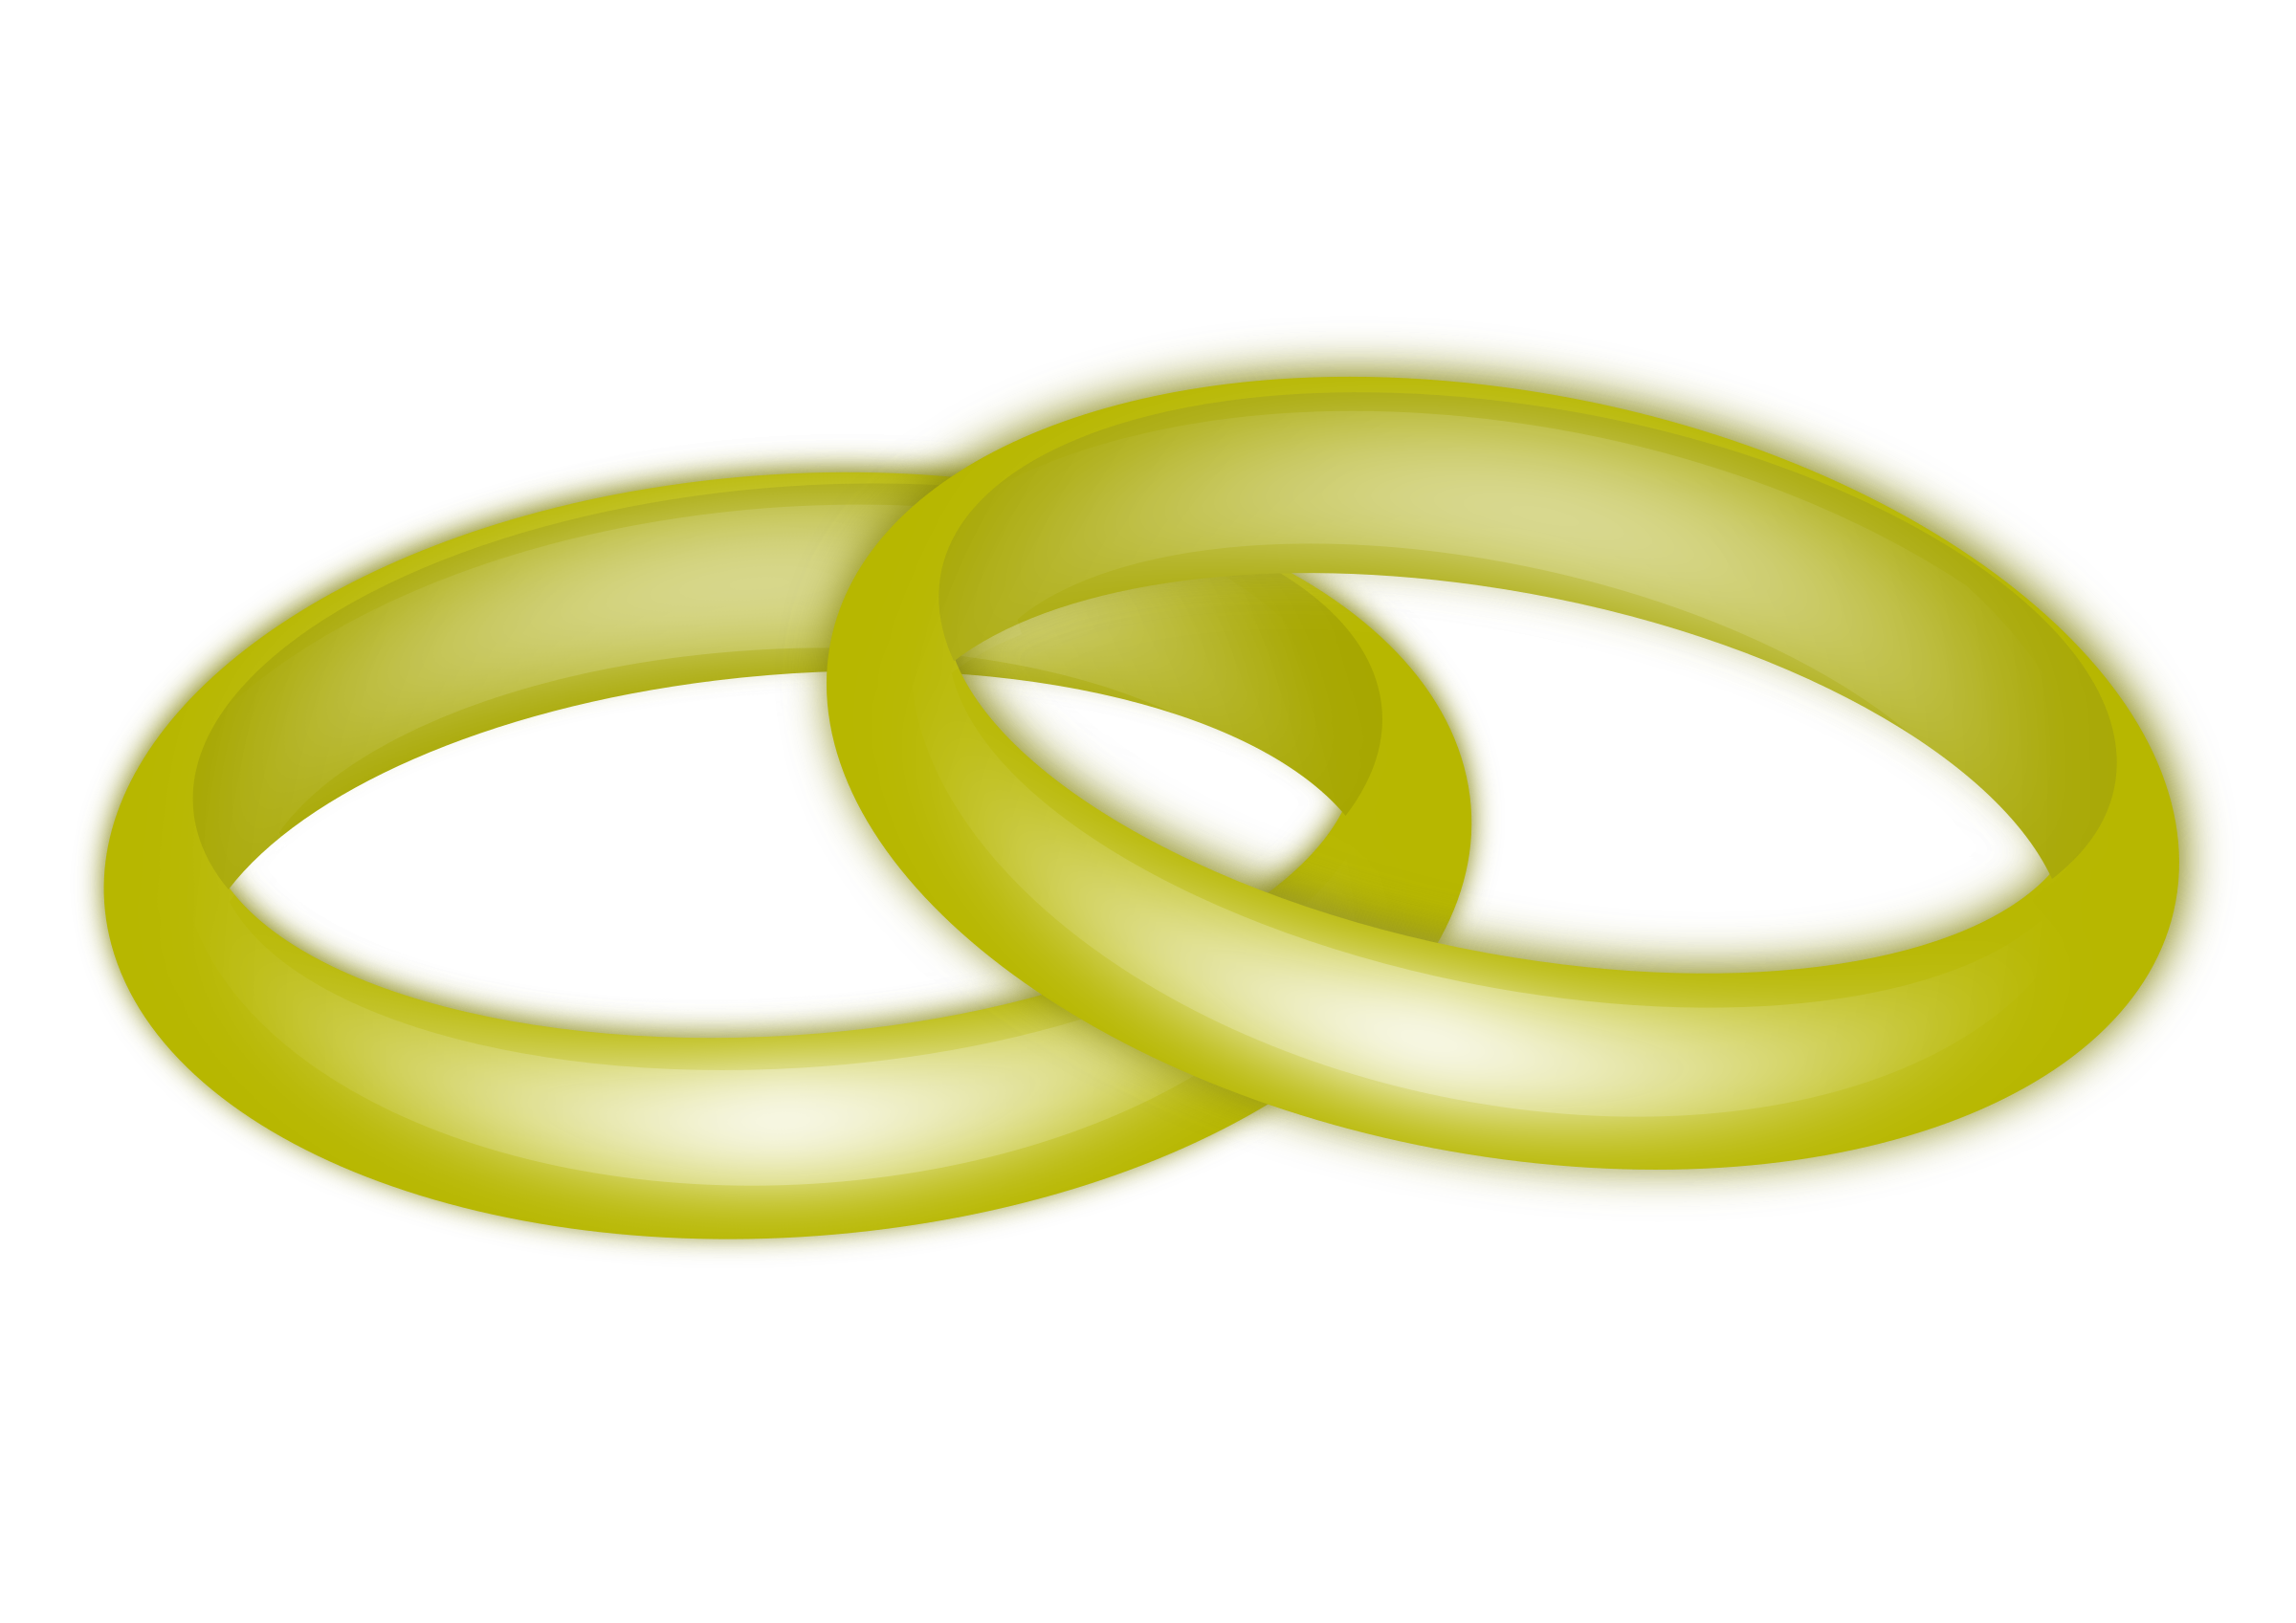 Wedding Rings by valessiobrito